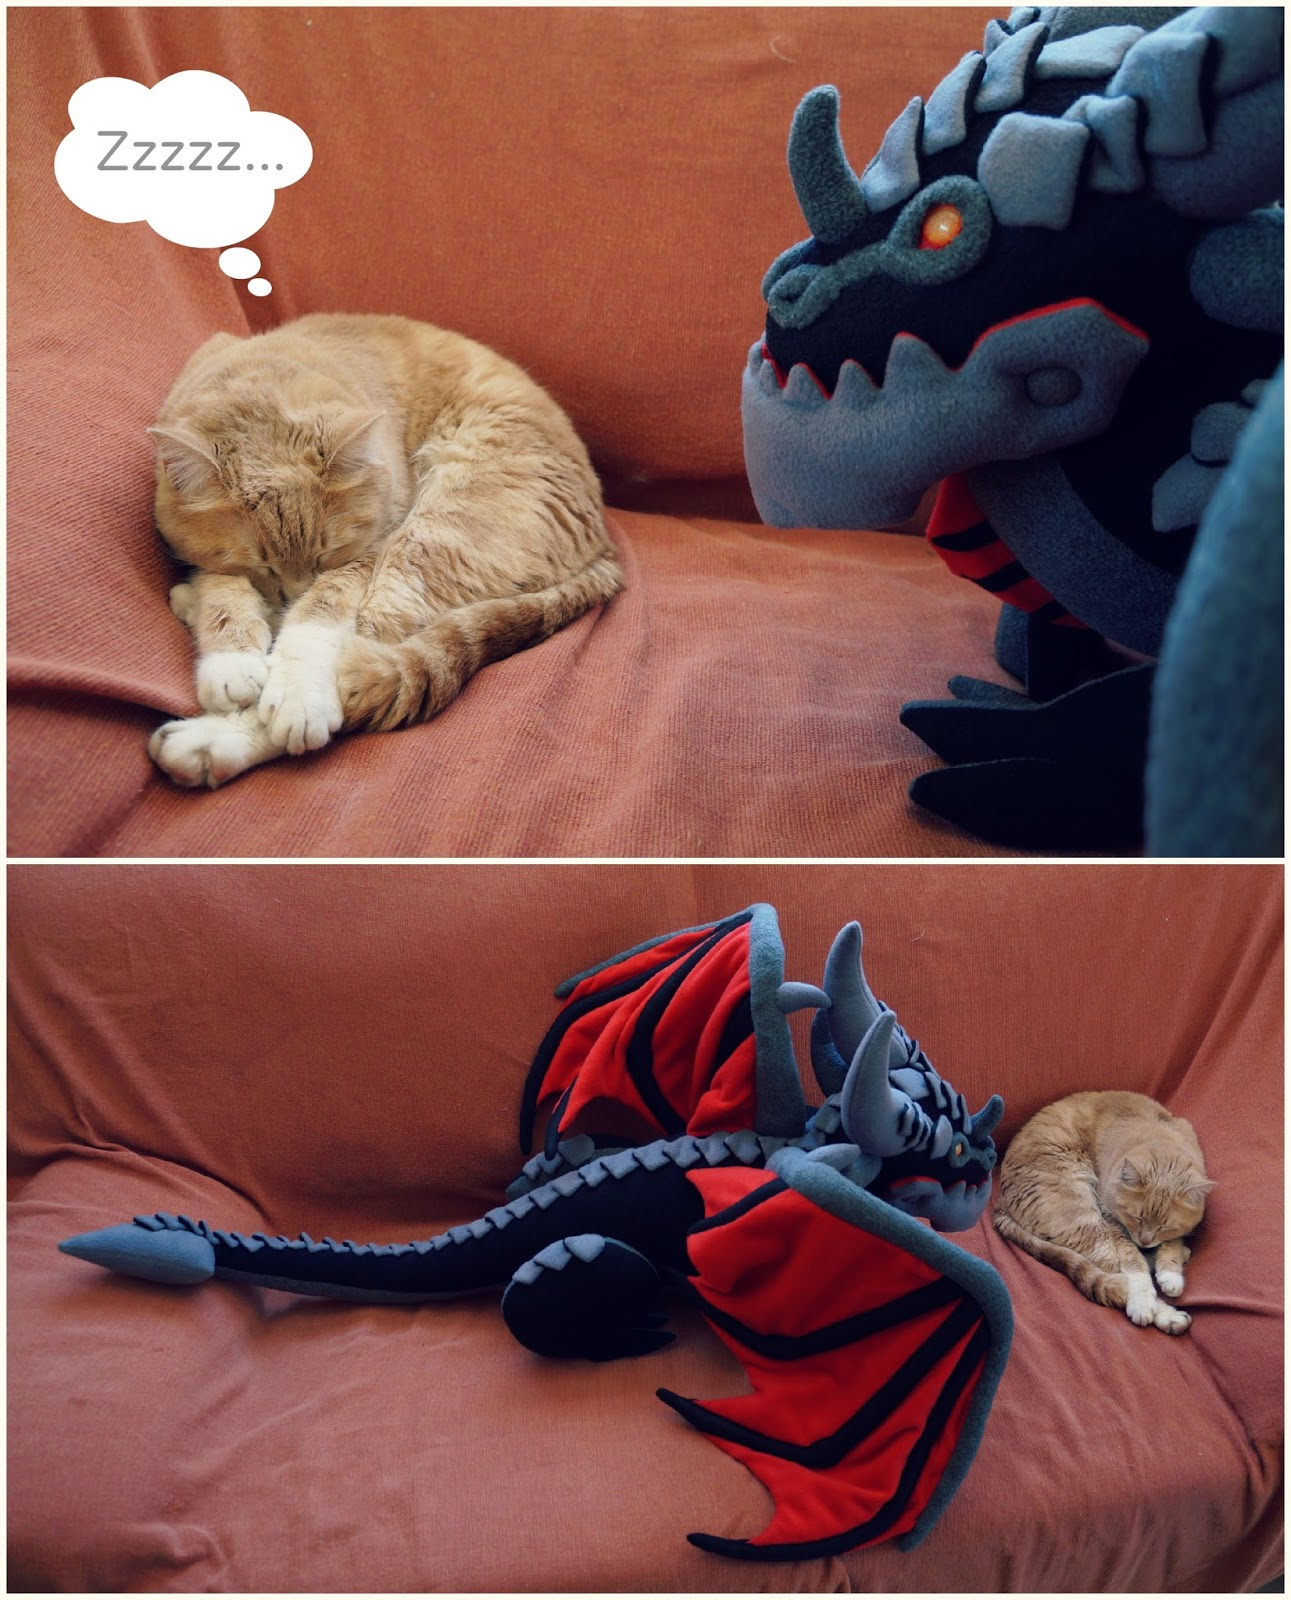 Gato Peluso y peluche Deathwing, el dragón de World of Warcraft